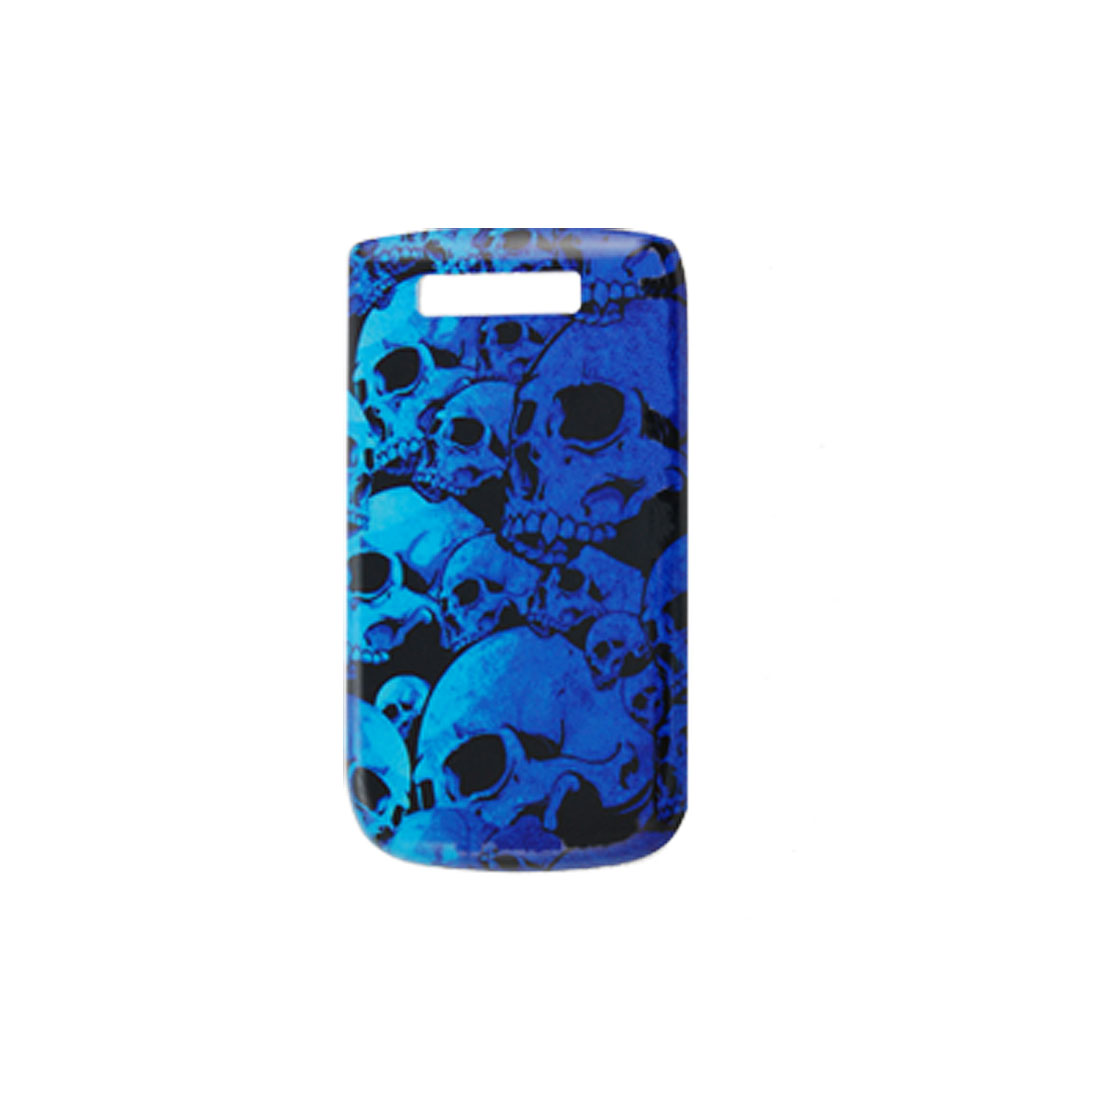 Blue Hard Plastic IMD Skull Print Shield Case for Blackberry 9800